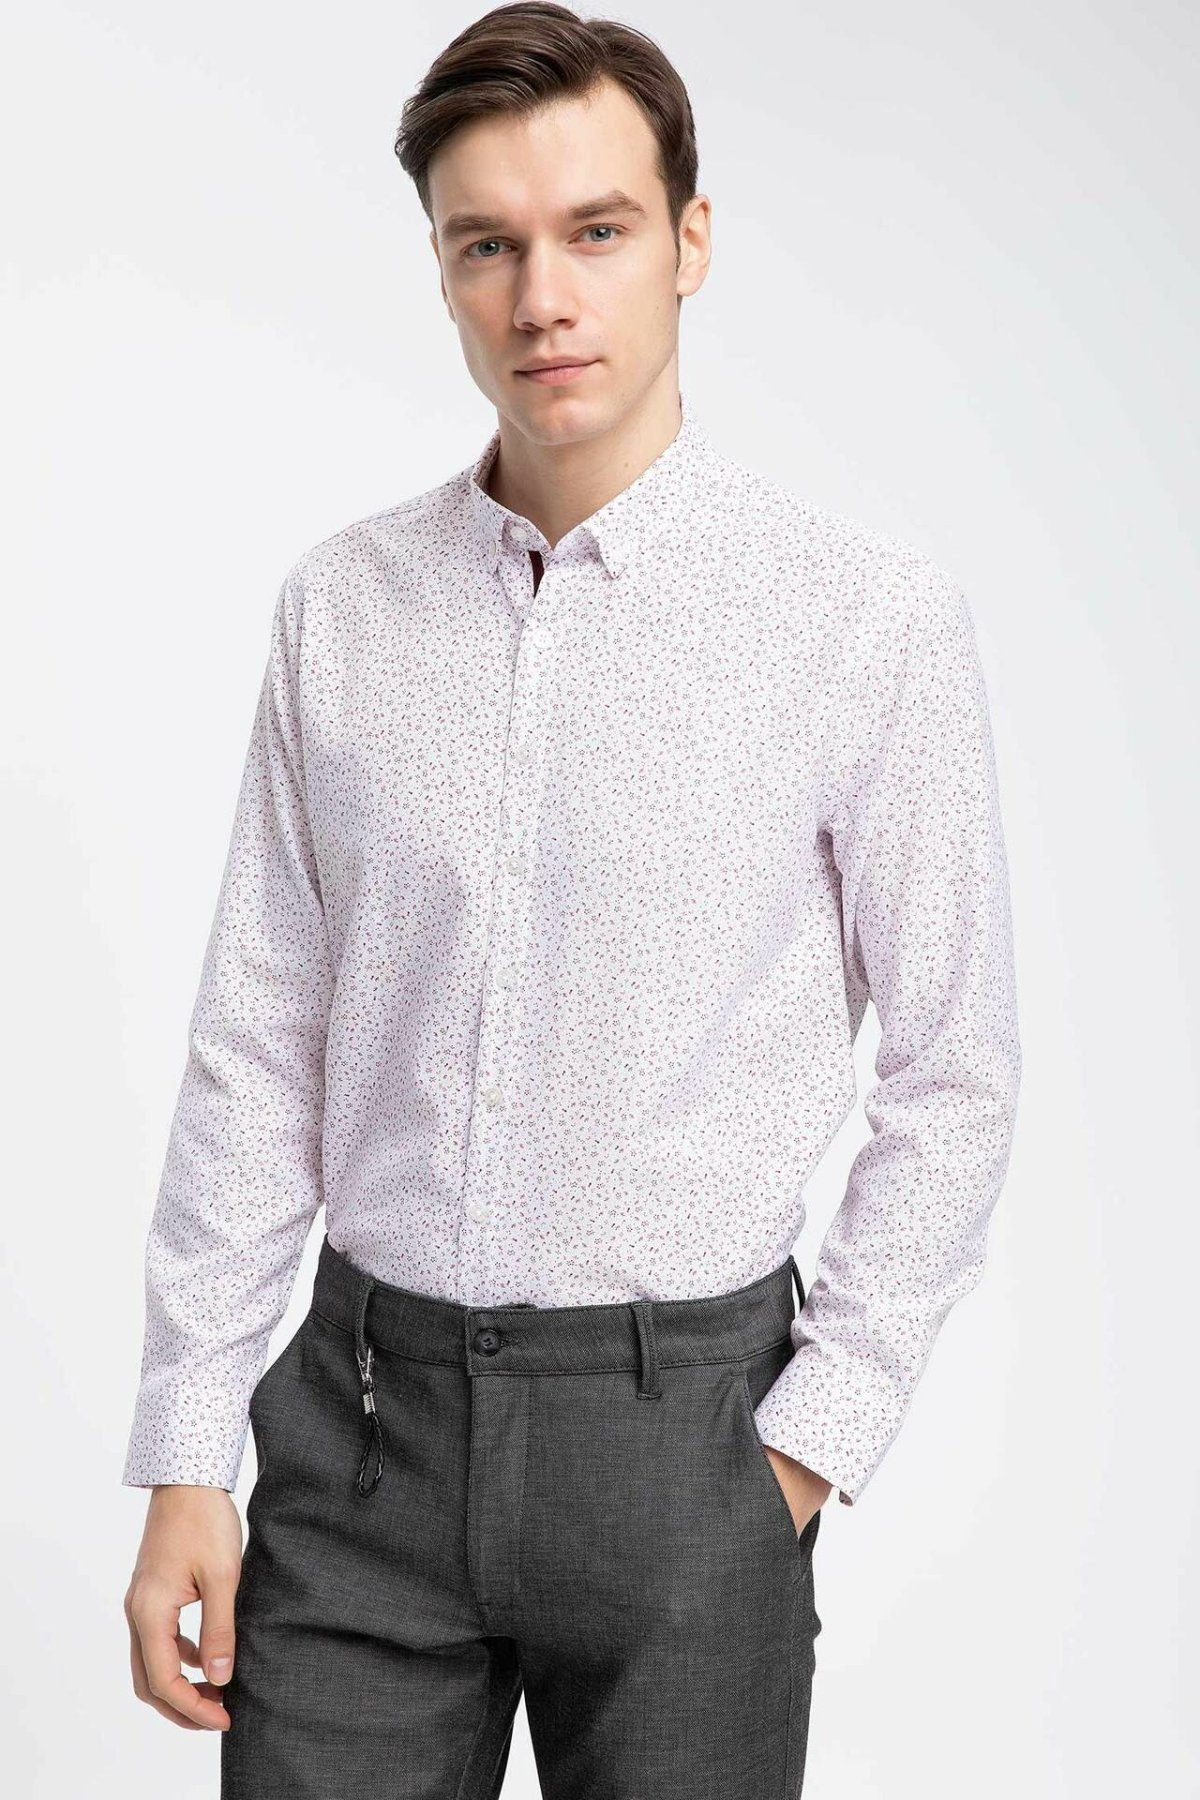 DeFacto Men Formal Stand Collar Shirt Casual Woven Top Long Sleeve Shirt Office Business Wear Top Shirt-K2290AZ19SPBR171